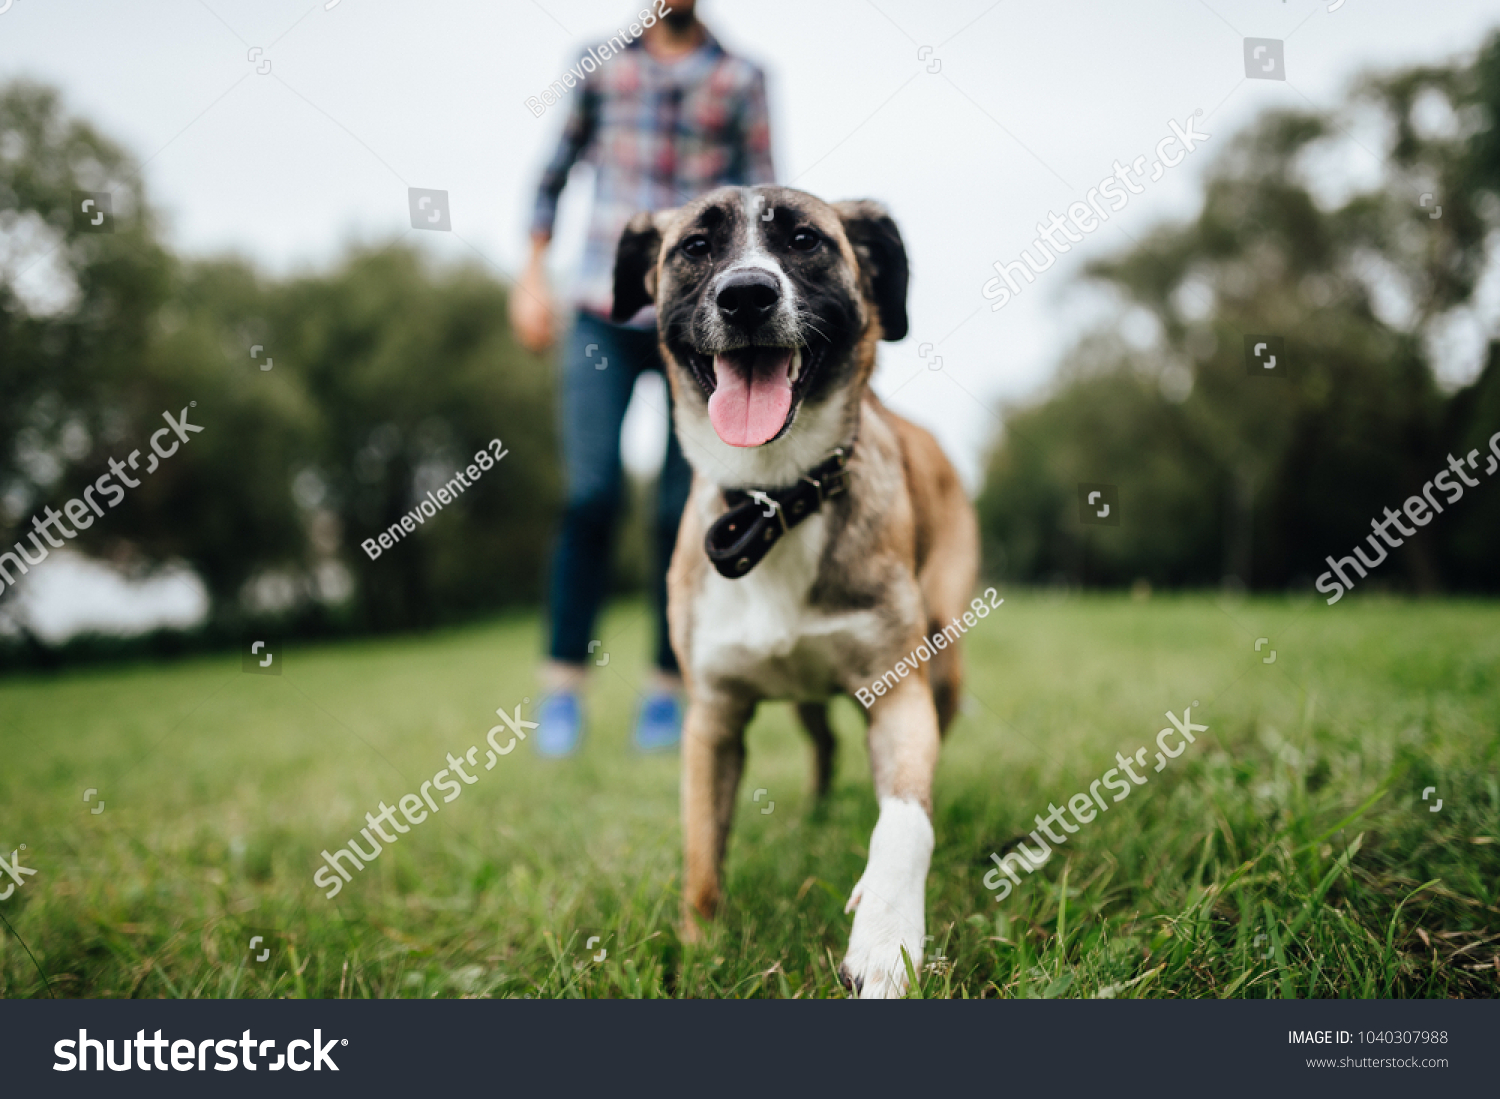 Adult stylish man playing with pet. Family outdoor. Animal lover. Happy dog enjoying freedom. Terrier breeding puppy have fun with owner. Furry crazy canine training at nature. Friends together. #1040307988